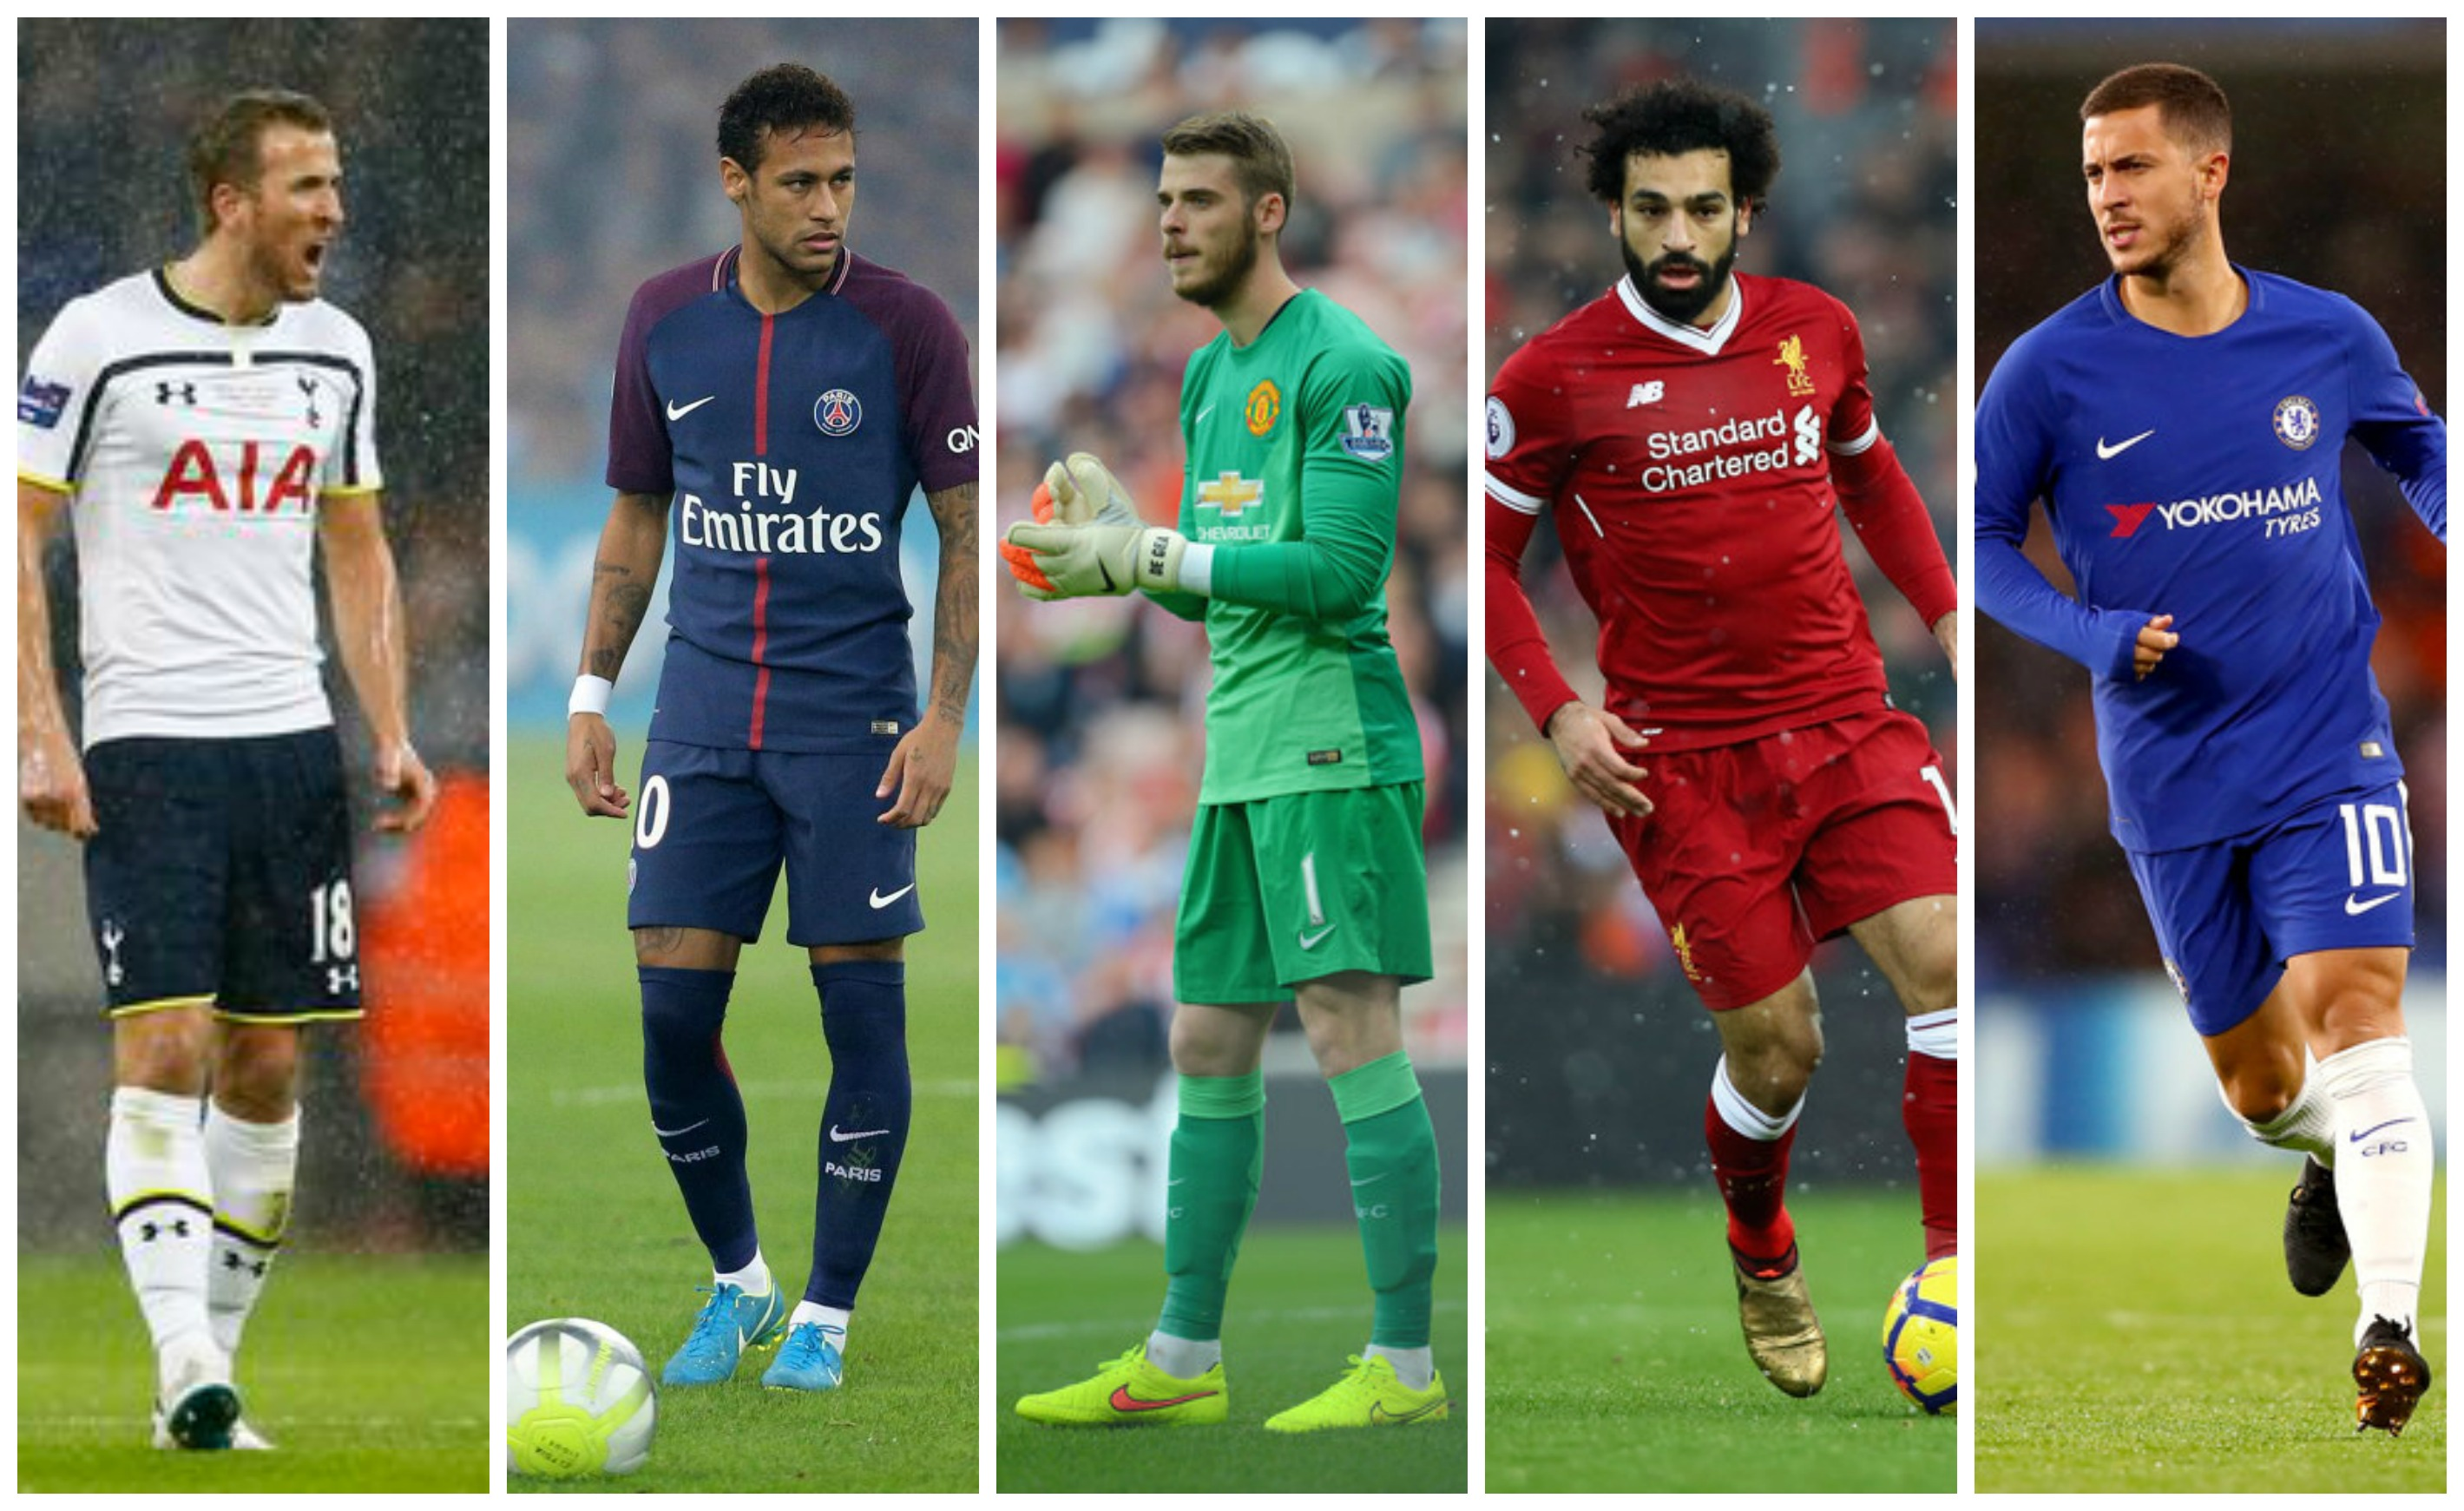 Top 5 Superstars Who Might Join Real Madrid Next Season